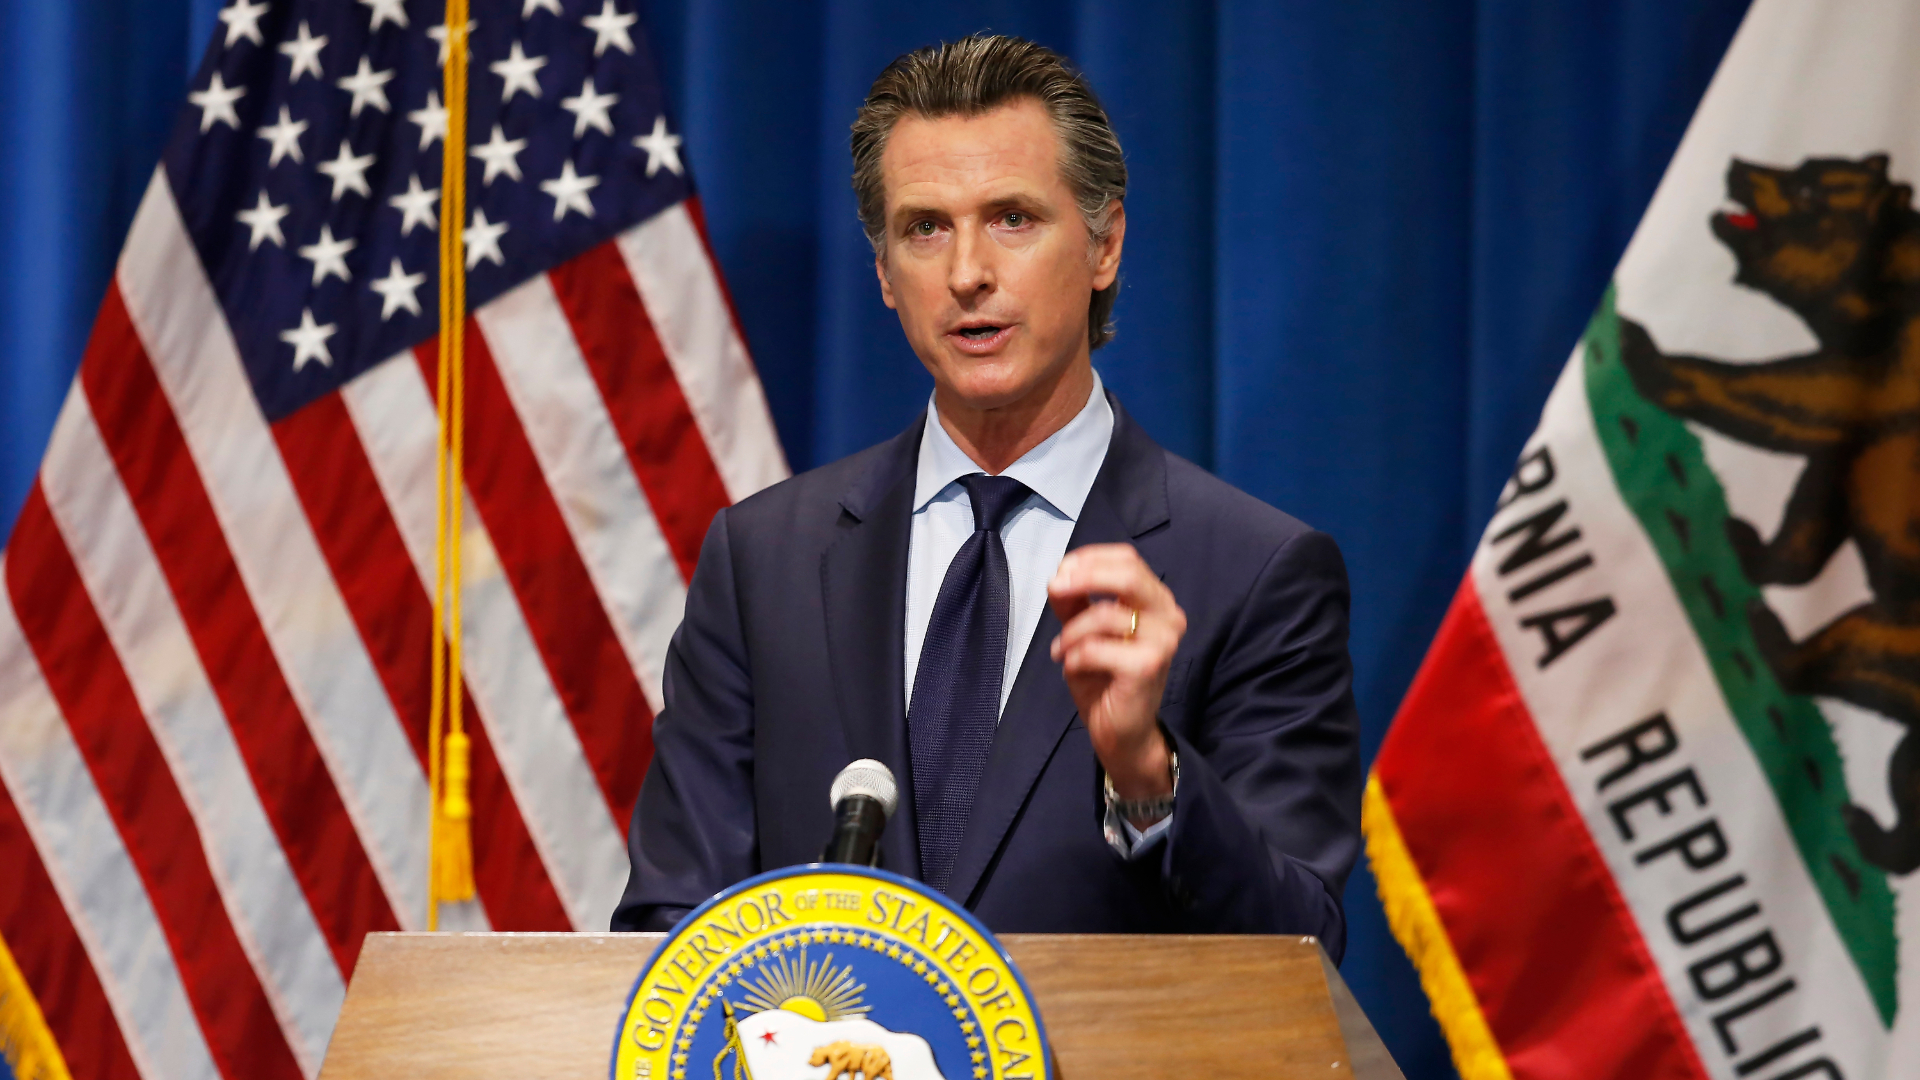 In this May 14, 2020, file photo California Gov. Gavin Newsom discusses his revised 2020-2021 state budget during a news conference in Sacramento. (Rich Pedroncelli / Associated Press)